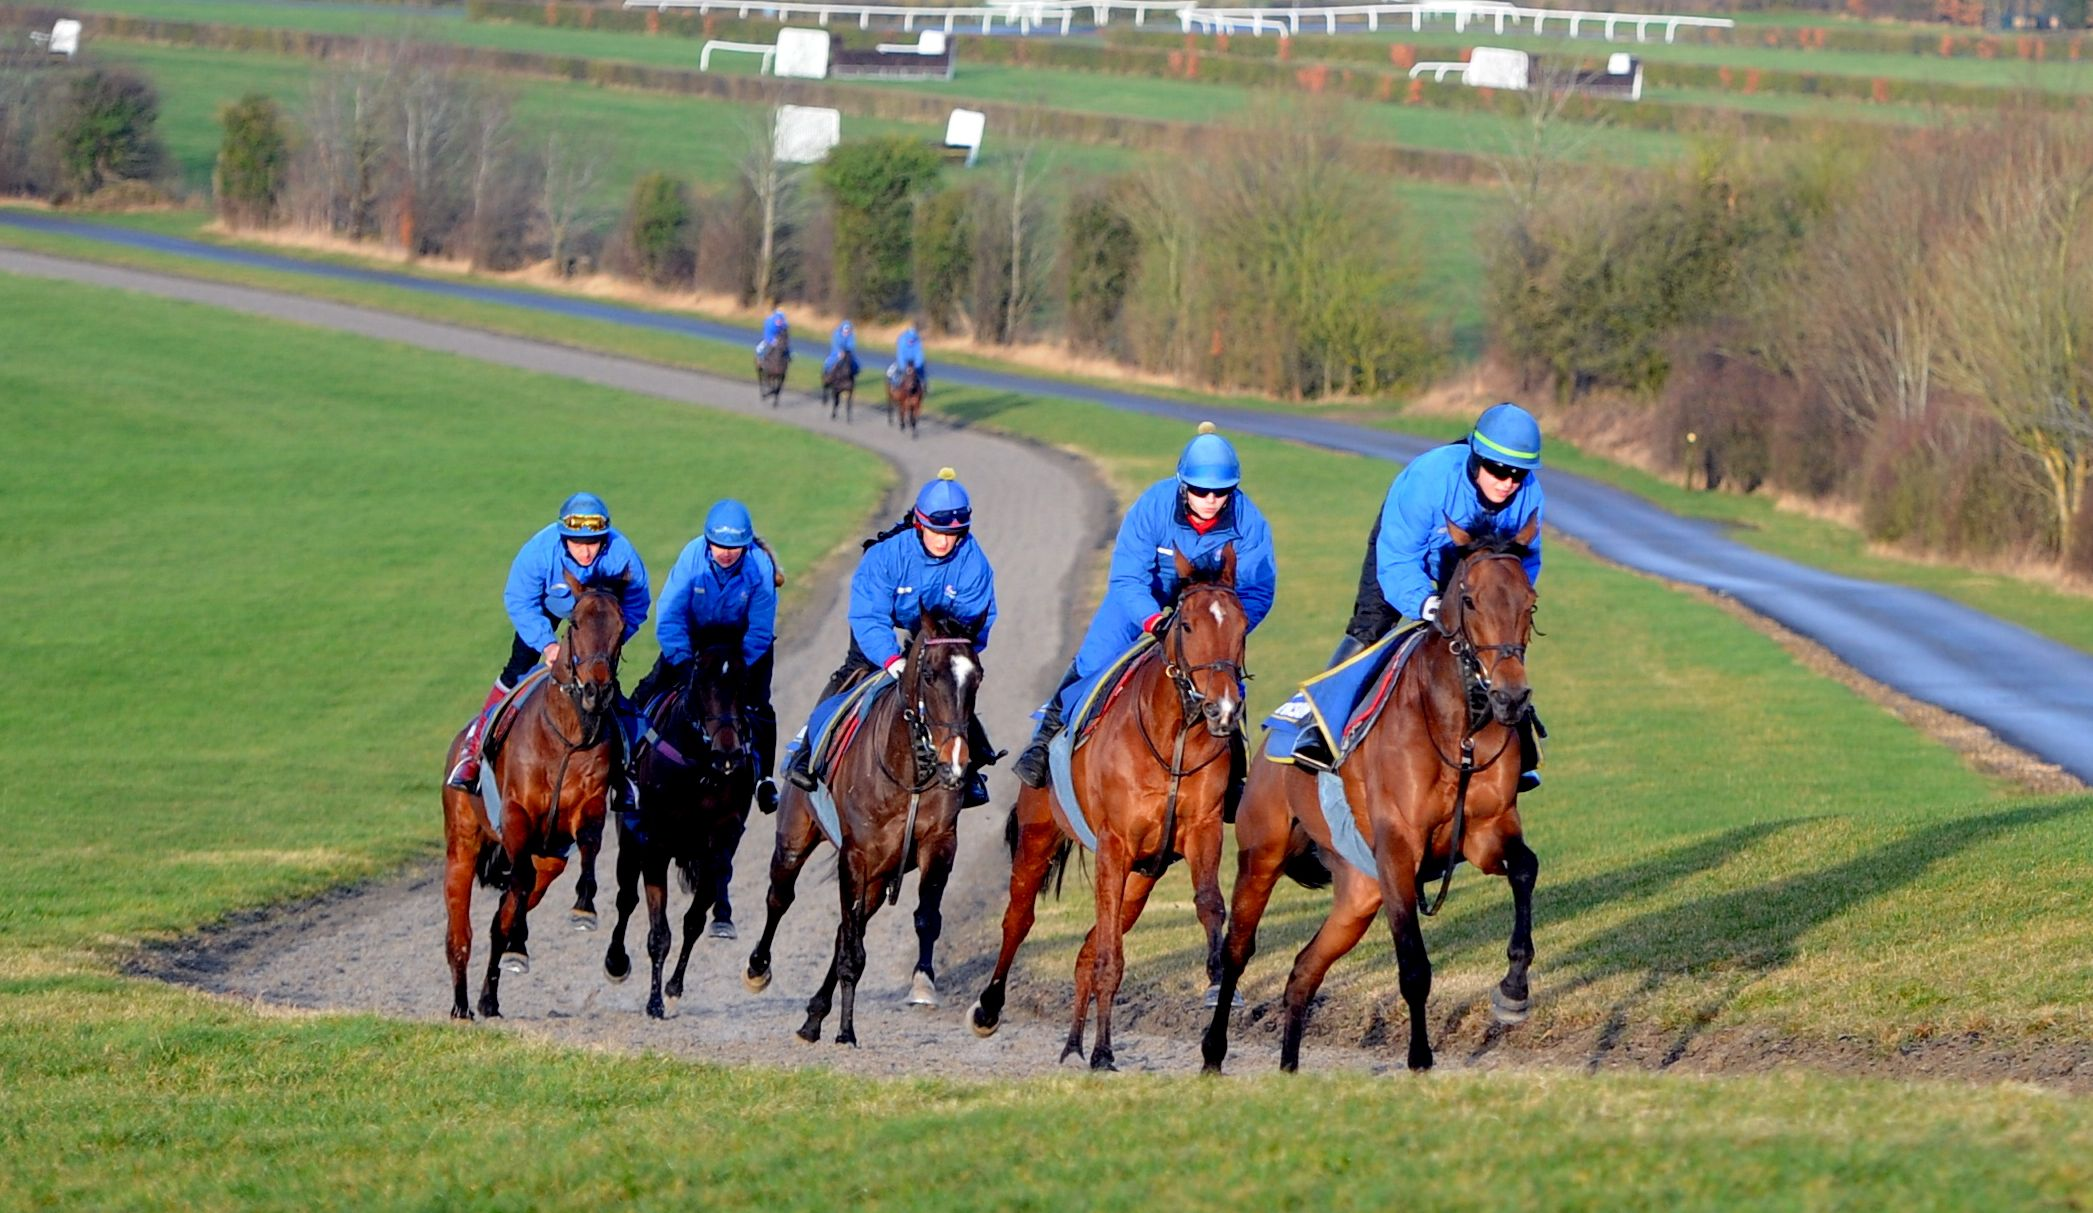 Horses training on the gallops at Jackdaws Castle, Temple Guiting. Picture by Paul Nicholls.